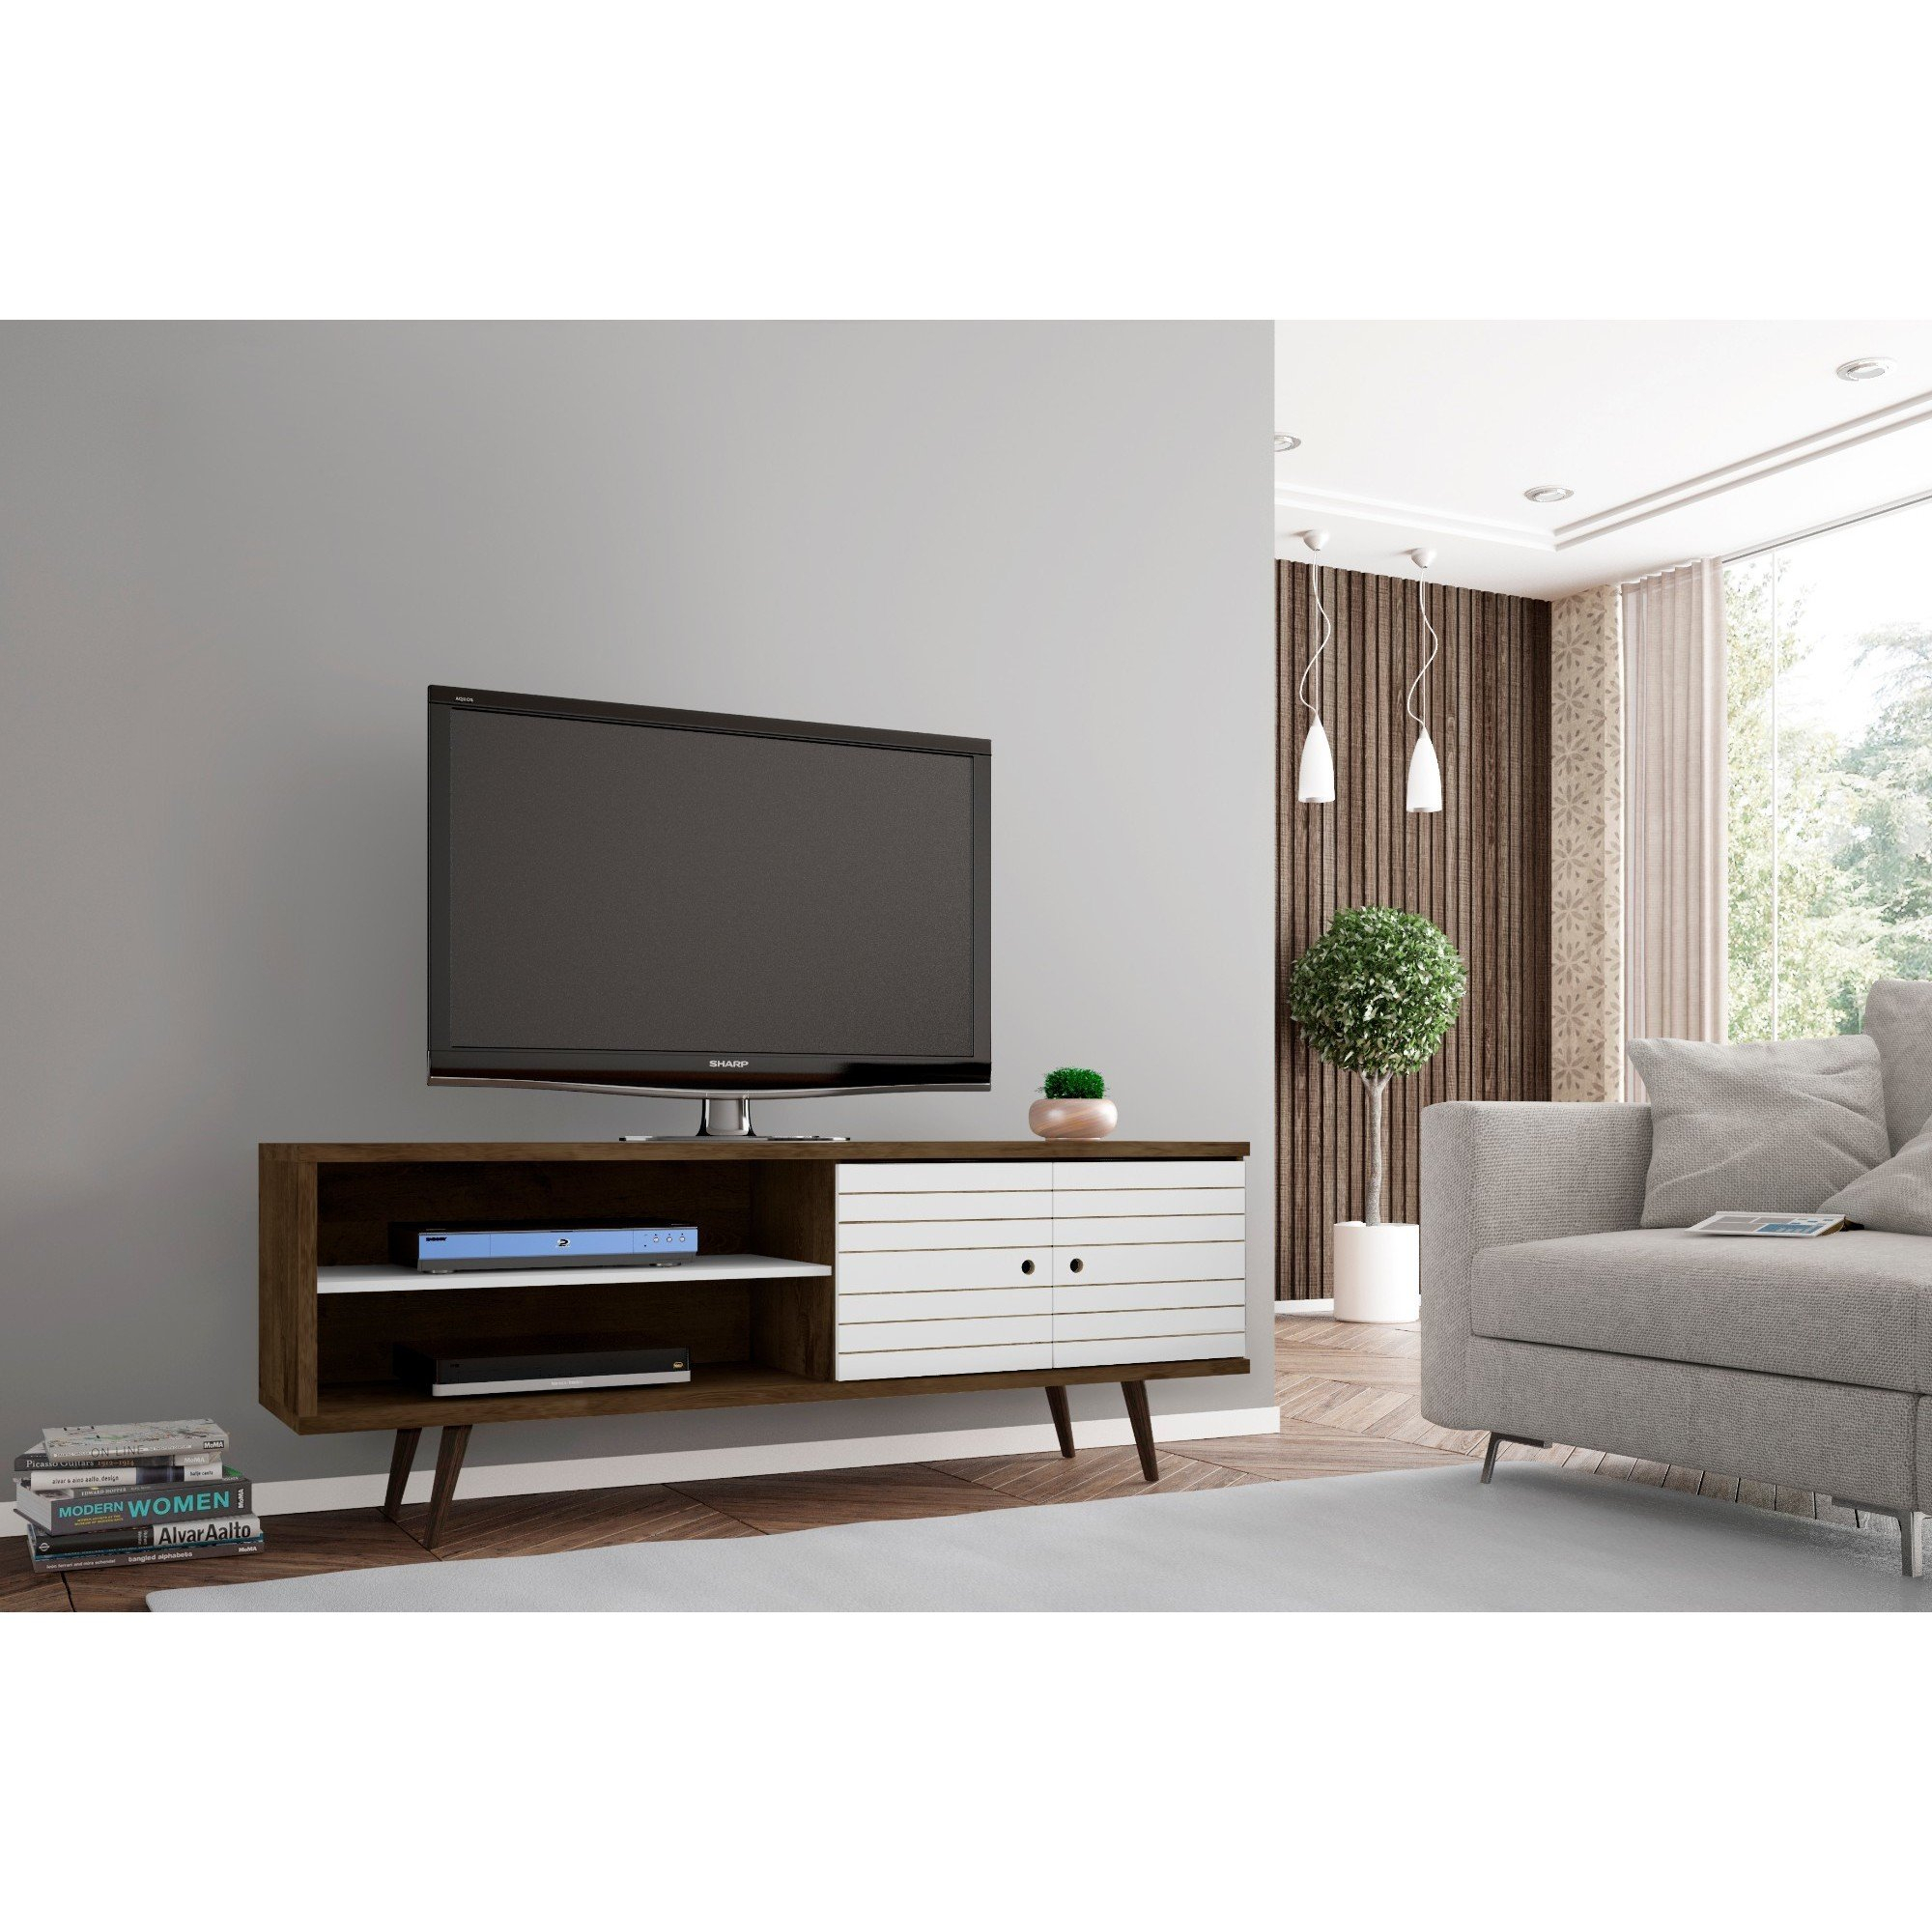 Shop Carson Carrington Sortland Wooden Modern Tv Stand - On Sale throughout Canyon 64 Inch Tv Stands (Image 25 of 30)